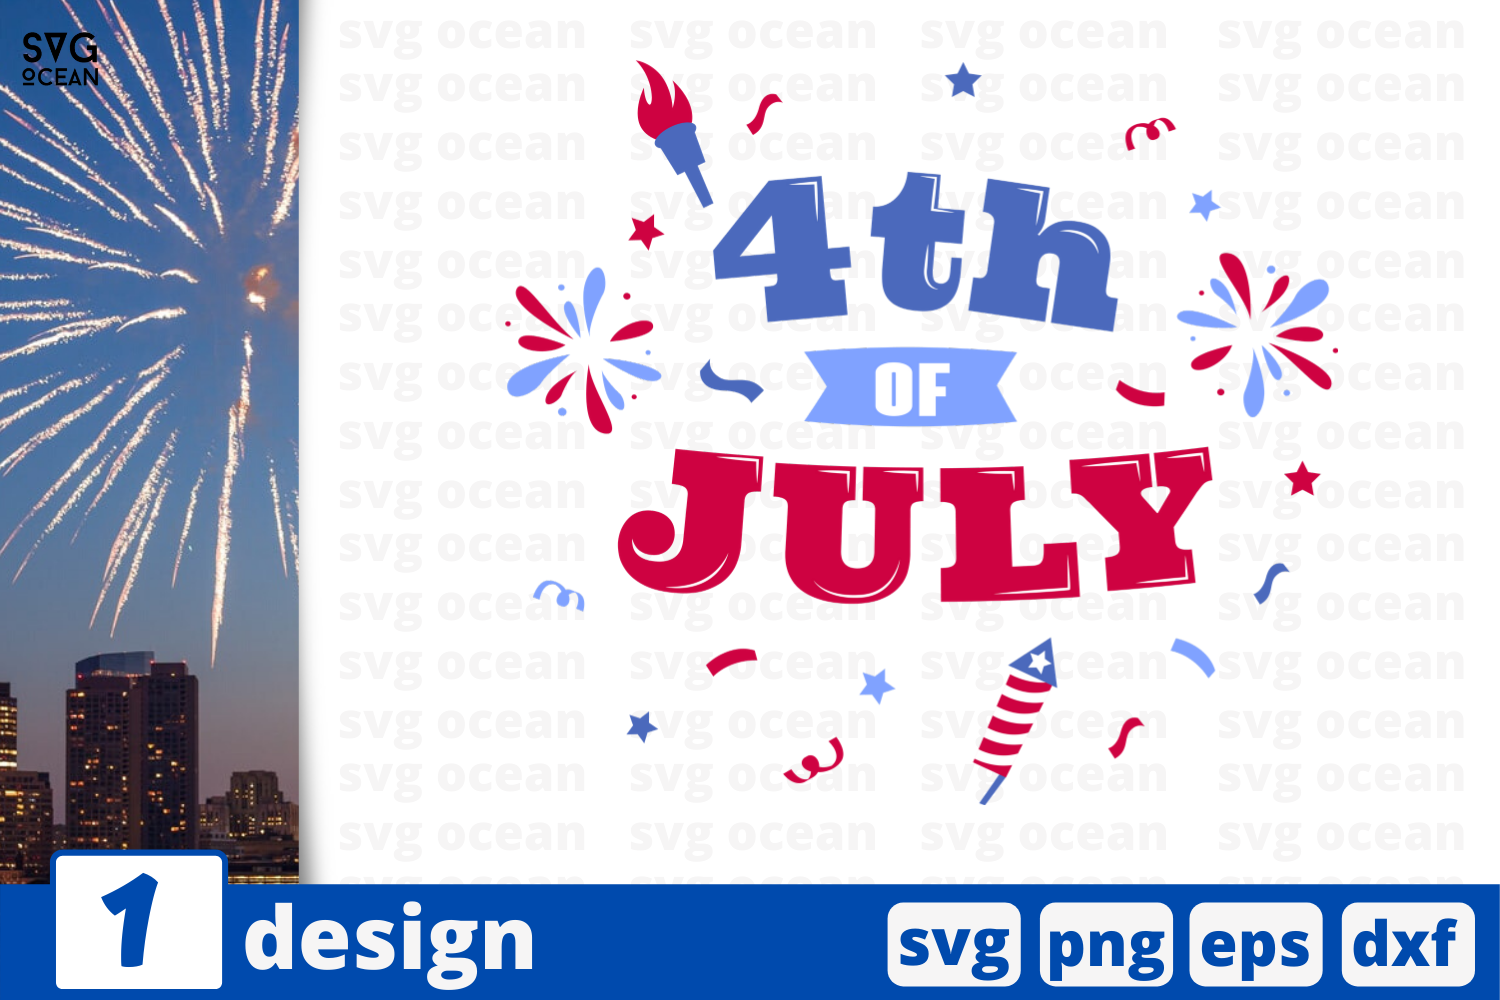 Download Free 4th Of July Graphic By Svgocean Creative Fabrica for Cricut Explore, Silhouette and other cutting machines.